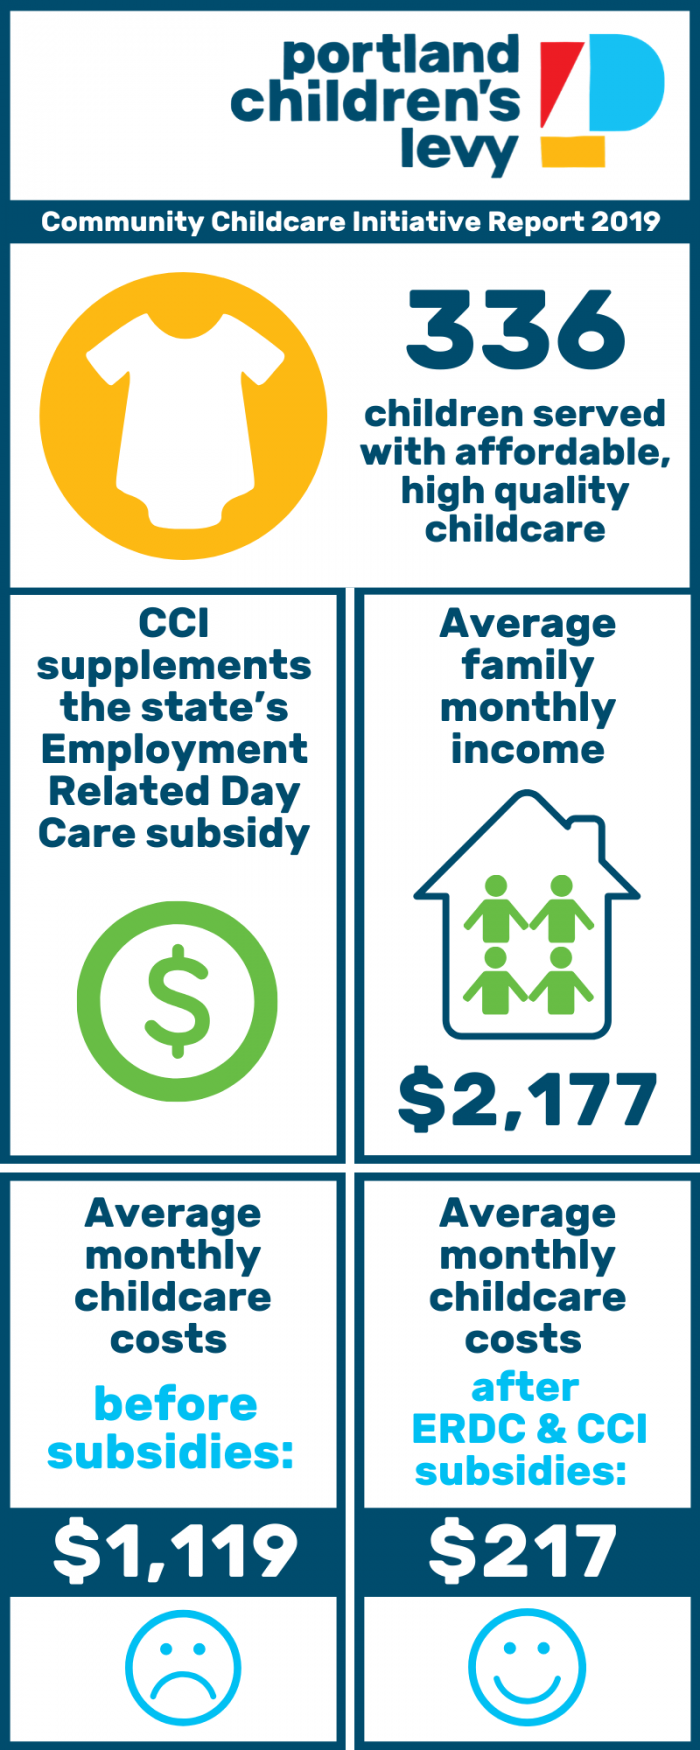 Community Childcare Initiative Report 2019 Infographic